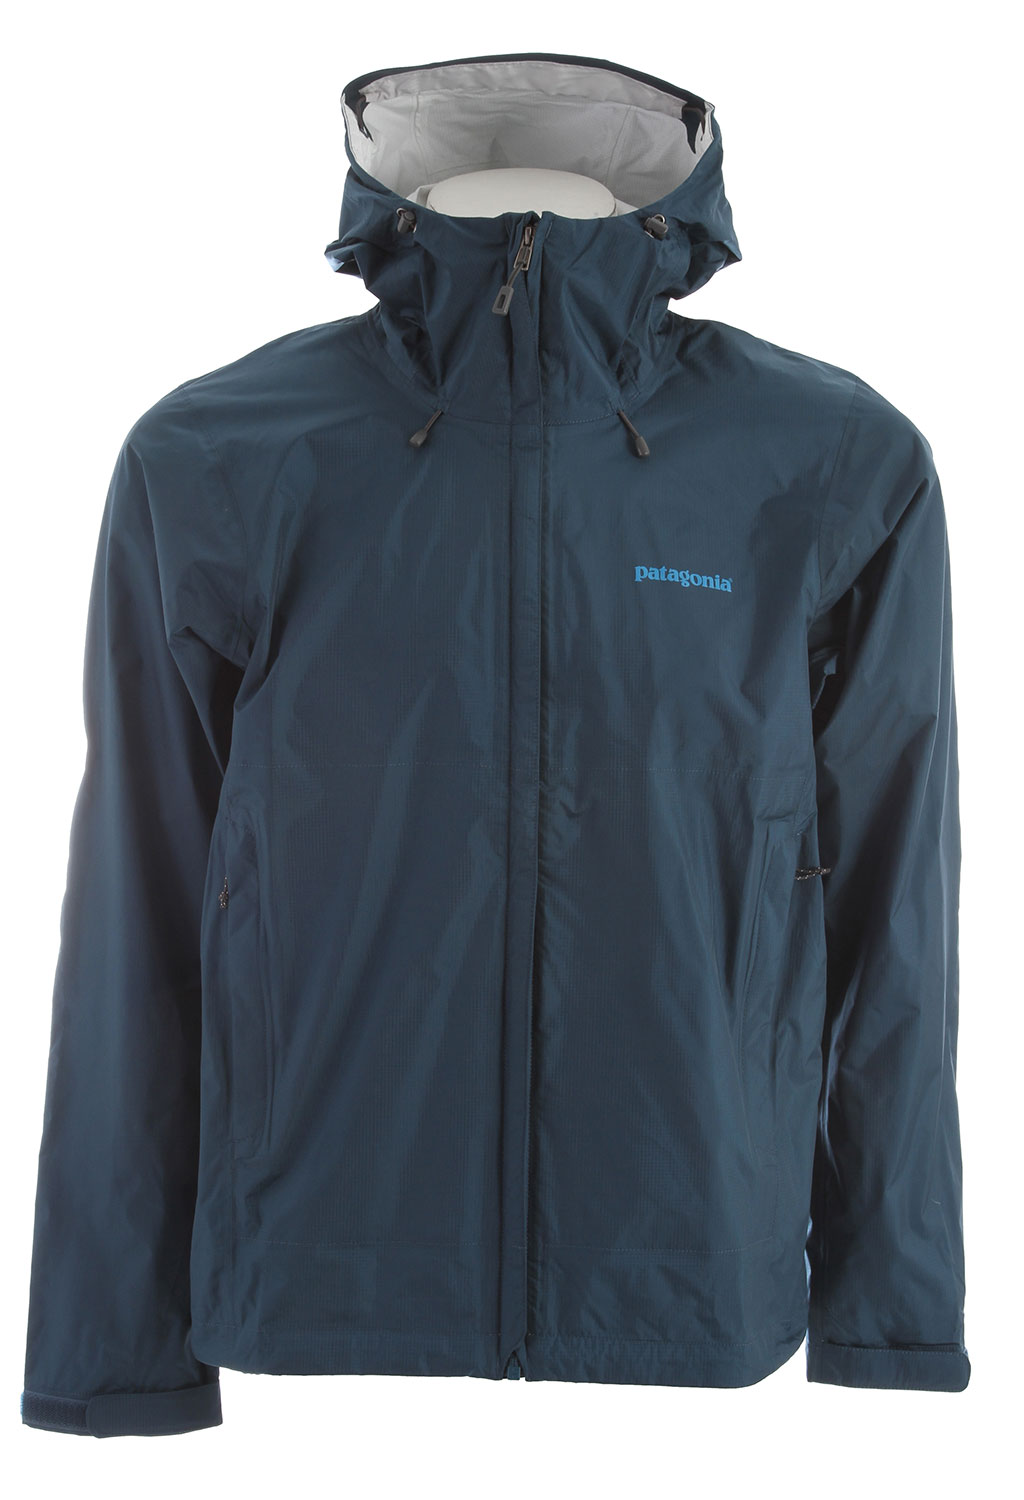 Pared-down and packable, the Torrentshell is an H2No Performance Standard 2.5-layer nylon waterproof/breathable hard shell for seriously wet weather FABRIC: H2No Performance Standard shell: 2.5-layer, 2.6-oz 50-denier 100% nylon ripstop with a waterproof/breathable barrier and a Deluge DWR (durable water repellent) finishKey Features of the Patagonia Torrentshell Jacket: Regular fit H2No Performance Standard shell with waterproof/breathable 2.5-layer nylon ripstop repels moisture 2-way-adjustable hood with a laminated visor rolls down and stows Microfleece-lined neck provides comfort and protects waterproof/breathable barrier Center-front zipper features minimal welt exterior and interior storm flaps that create a zipper-garage chin guard Pockets: two zippered handwarmers and venting pit zips, all with welted exterior storm flaps and DWR-treated zippers Self-fabric hook-and-loop cuff closures and adjustable drawcord hem seal out moisture Stows in self-stuff handwarmer pocket with carabineer clip-in loop Re-engineered pattern for improved fit - $96.95